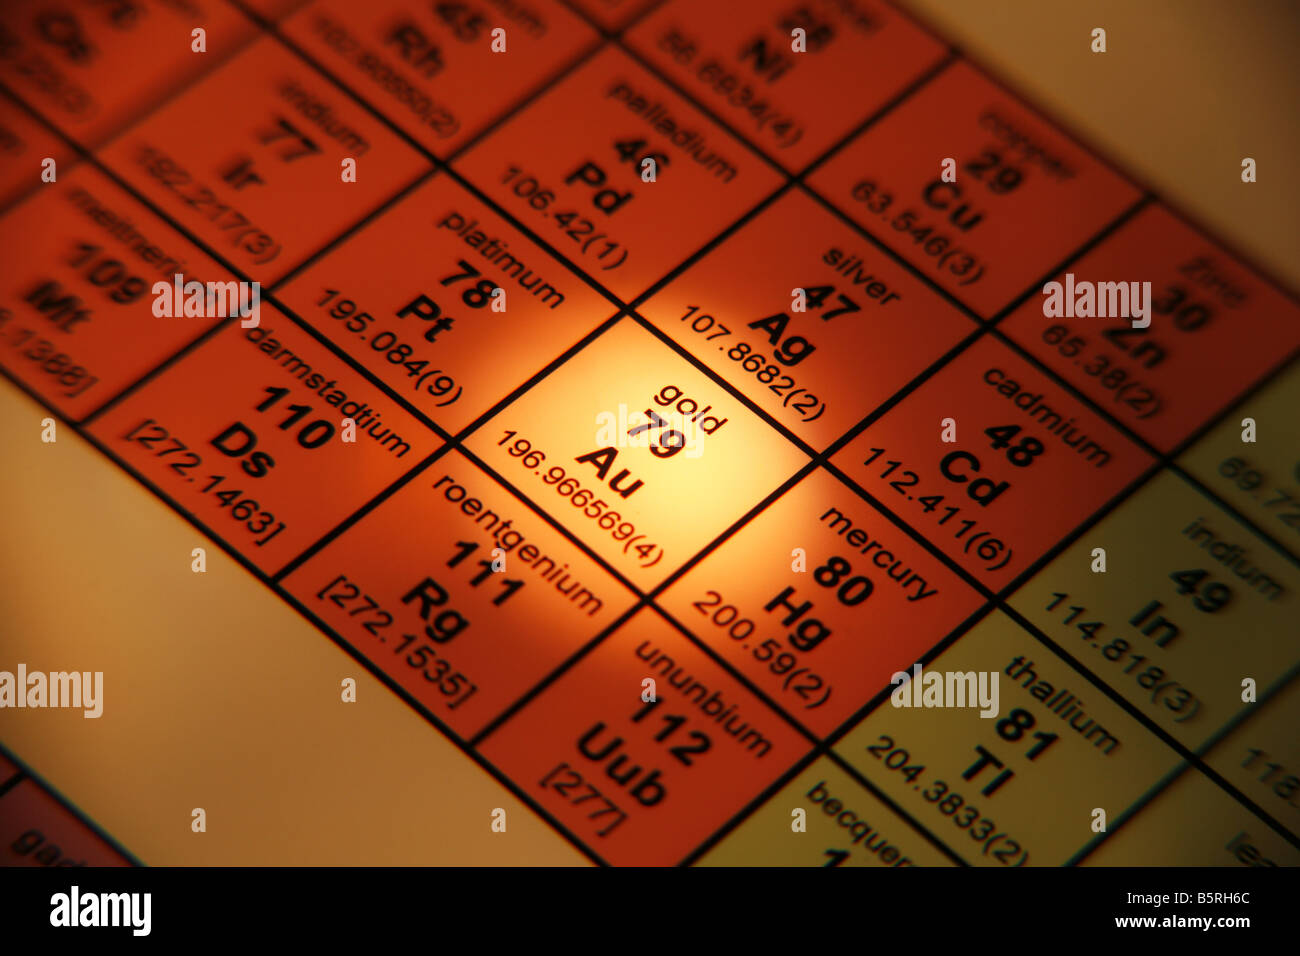 Periodic table of elements gold stock photo 20802052 alamy periodic table of elements gold urtaz Image collections